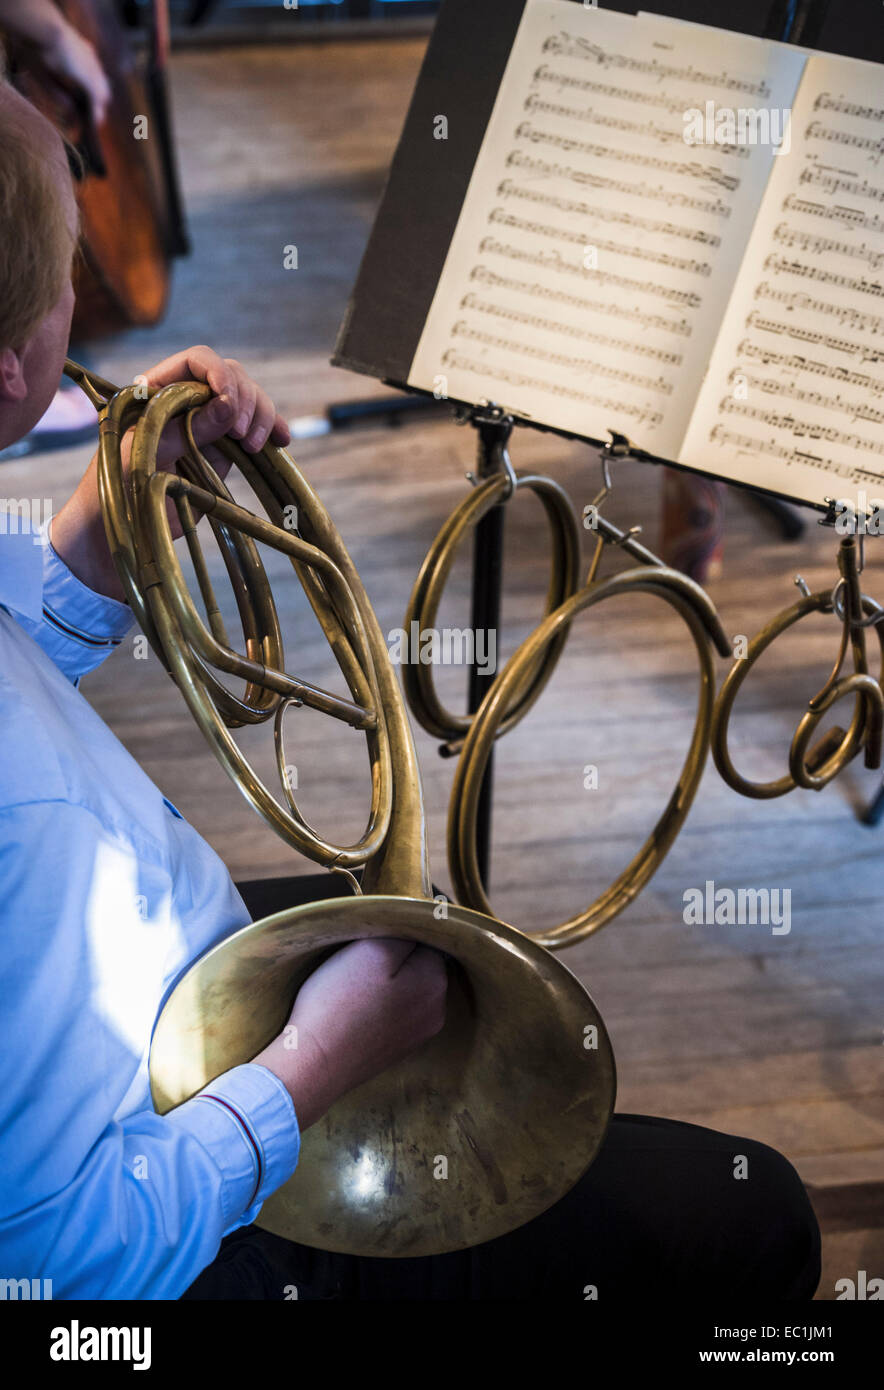 Classical natural horn, with crooks hanging from music stand. The crooks are used to change the pitch, scale and - Stock Image